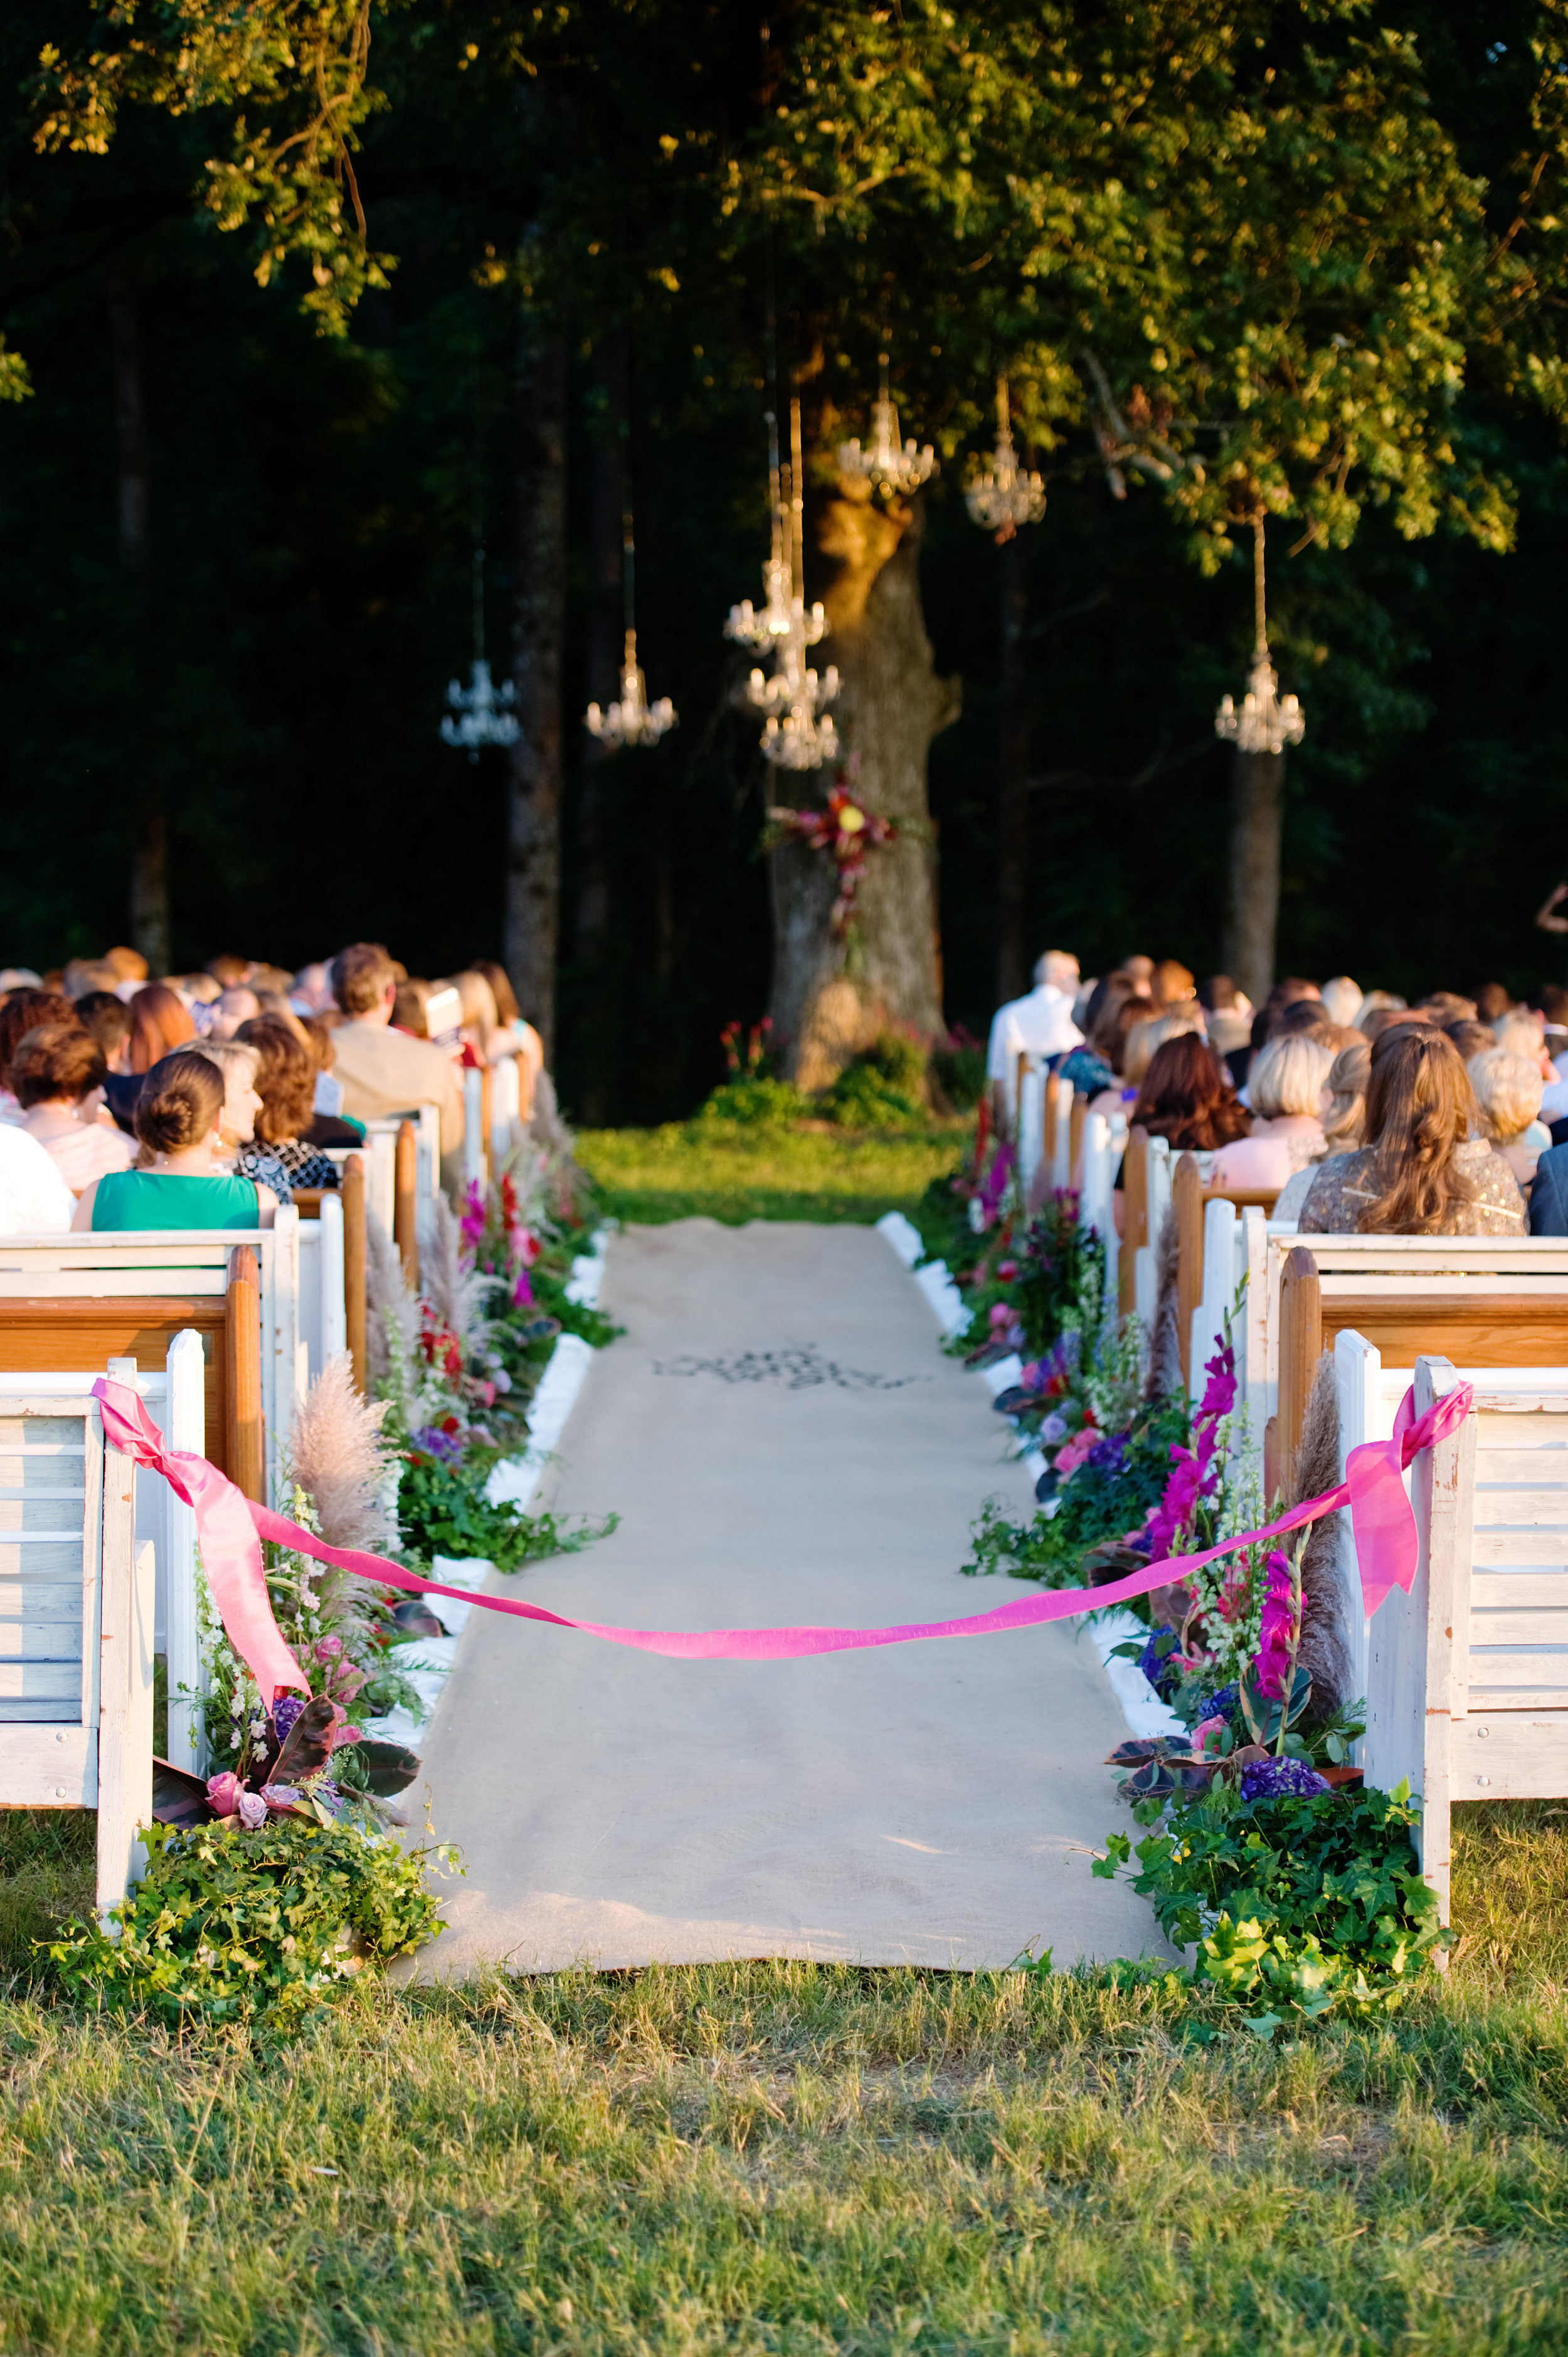 Mixed Church Pews at a Southern Wedding. Photos by Simple Color Photography, Flowers by HotHouse Design Studio, and Planning by Meghan Cease.